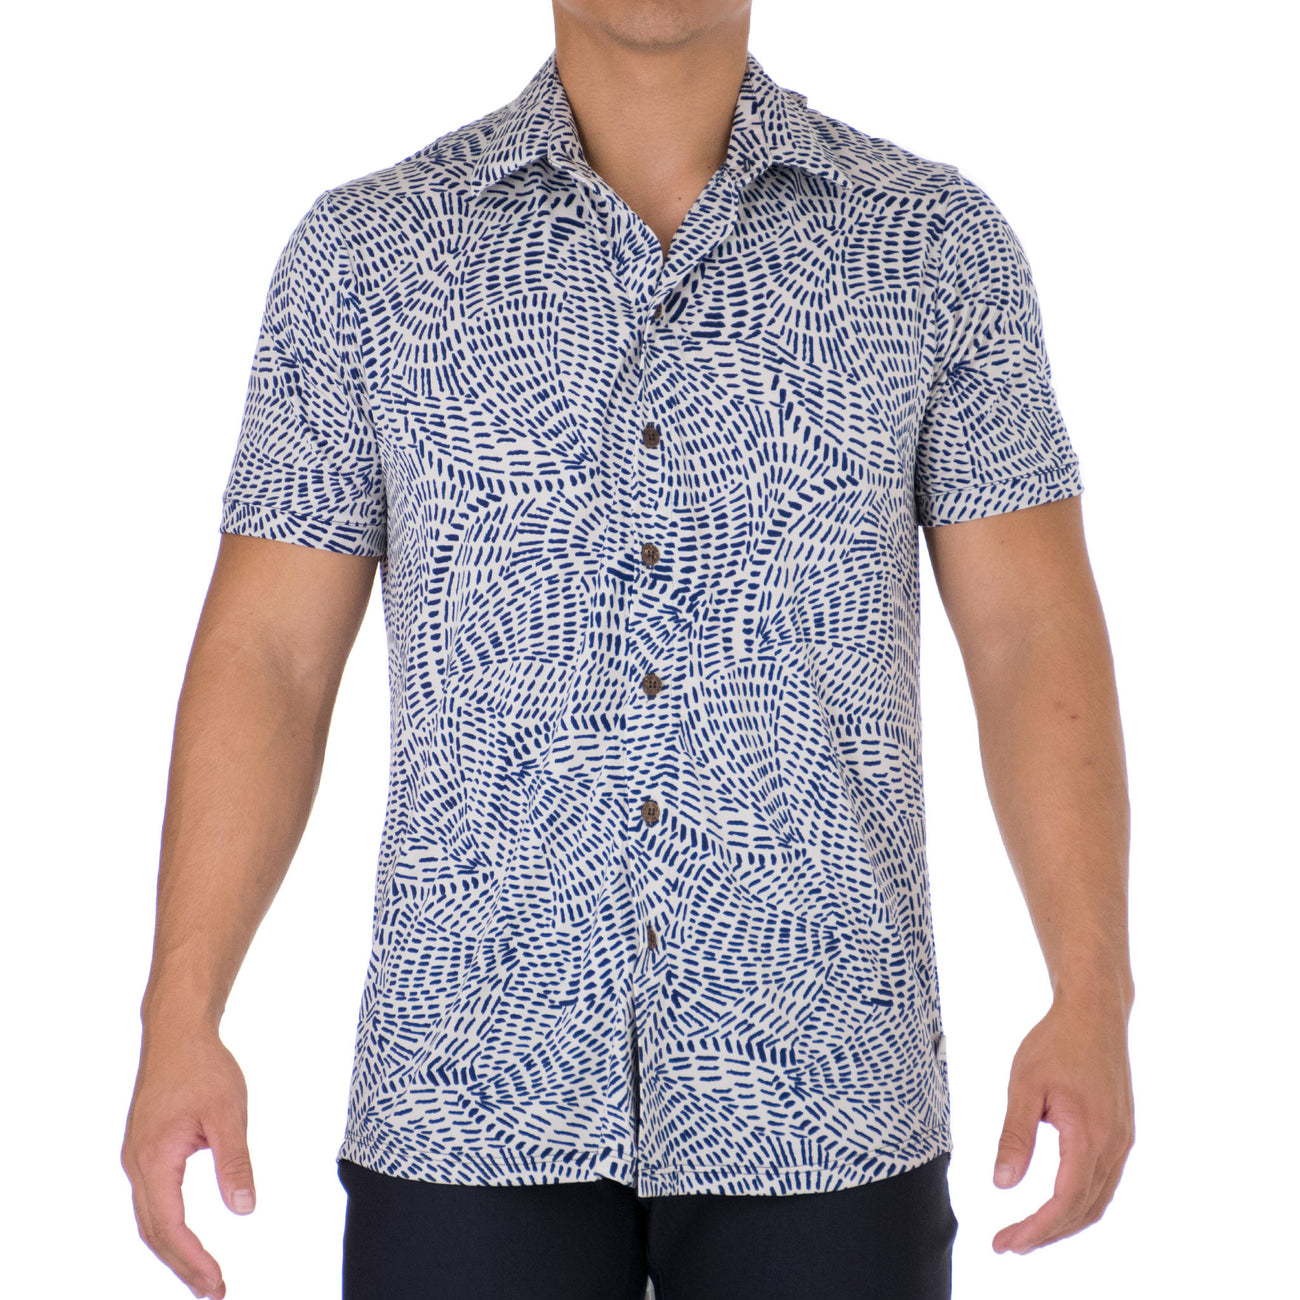 MAKANI MENS KNIT BUTTONDOWN SHIRT